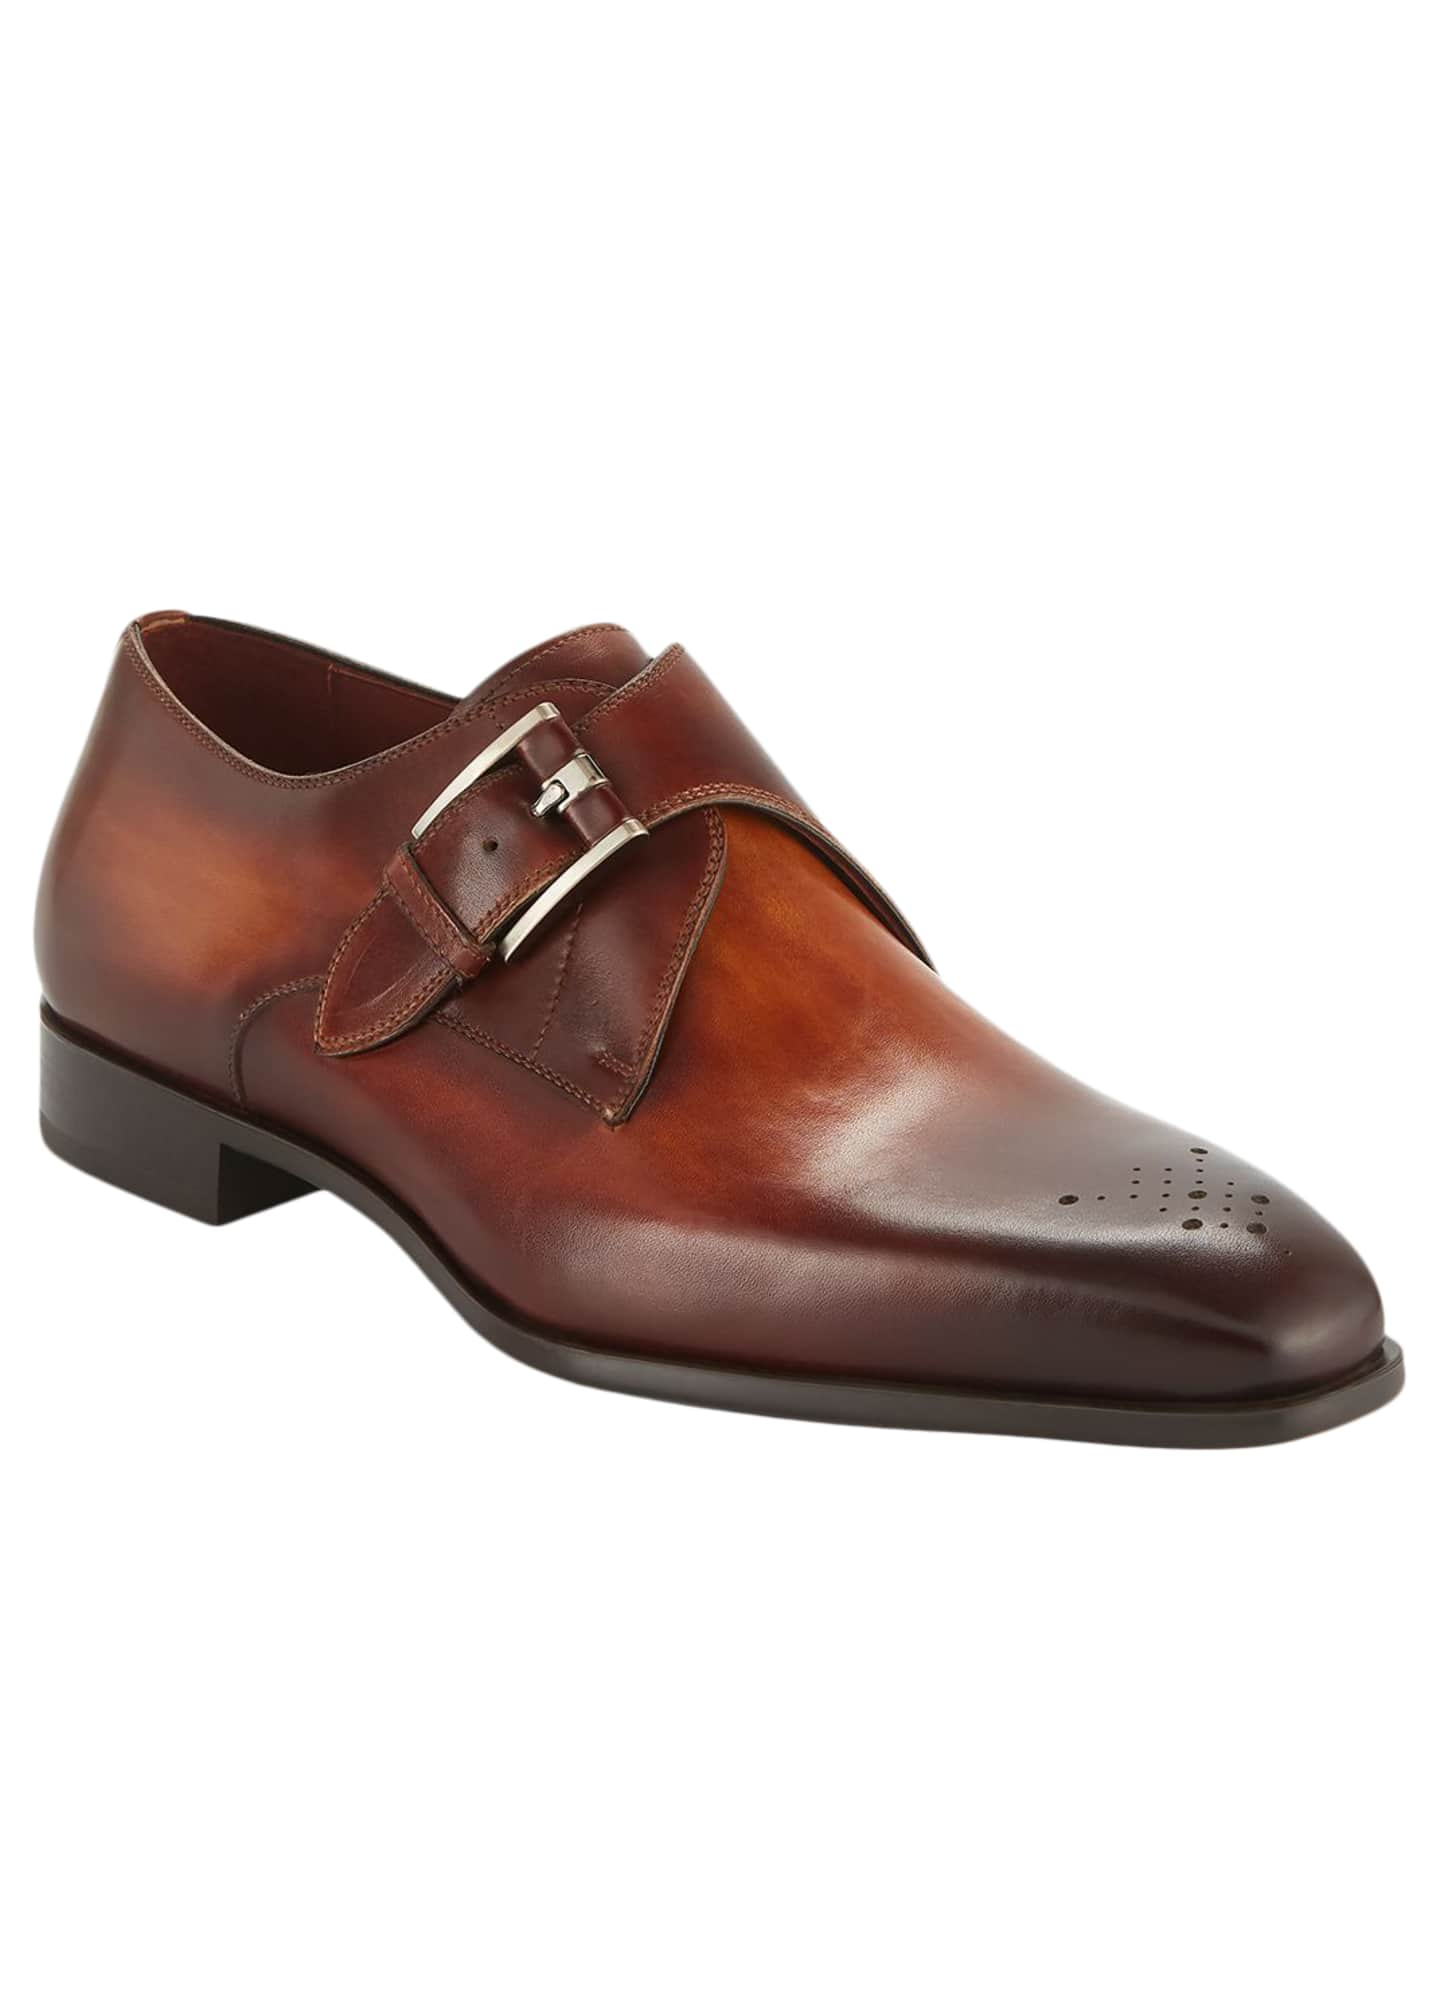 Magnanni for Neiman Marcus Men's Single-Monk Leather Shoes